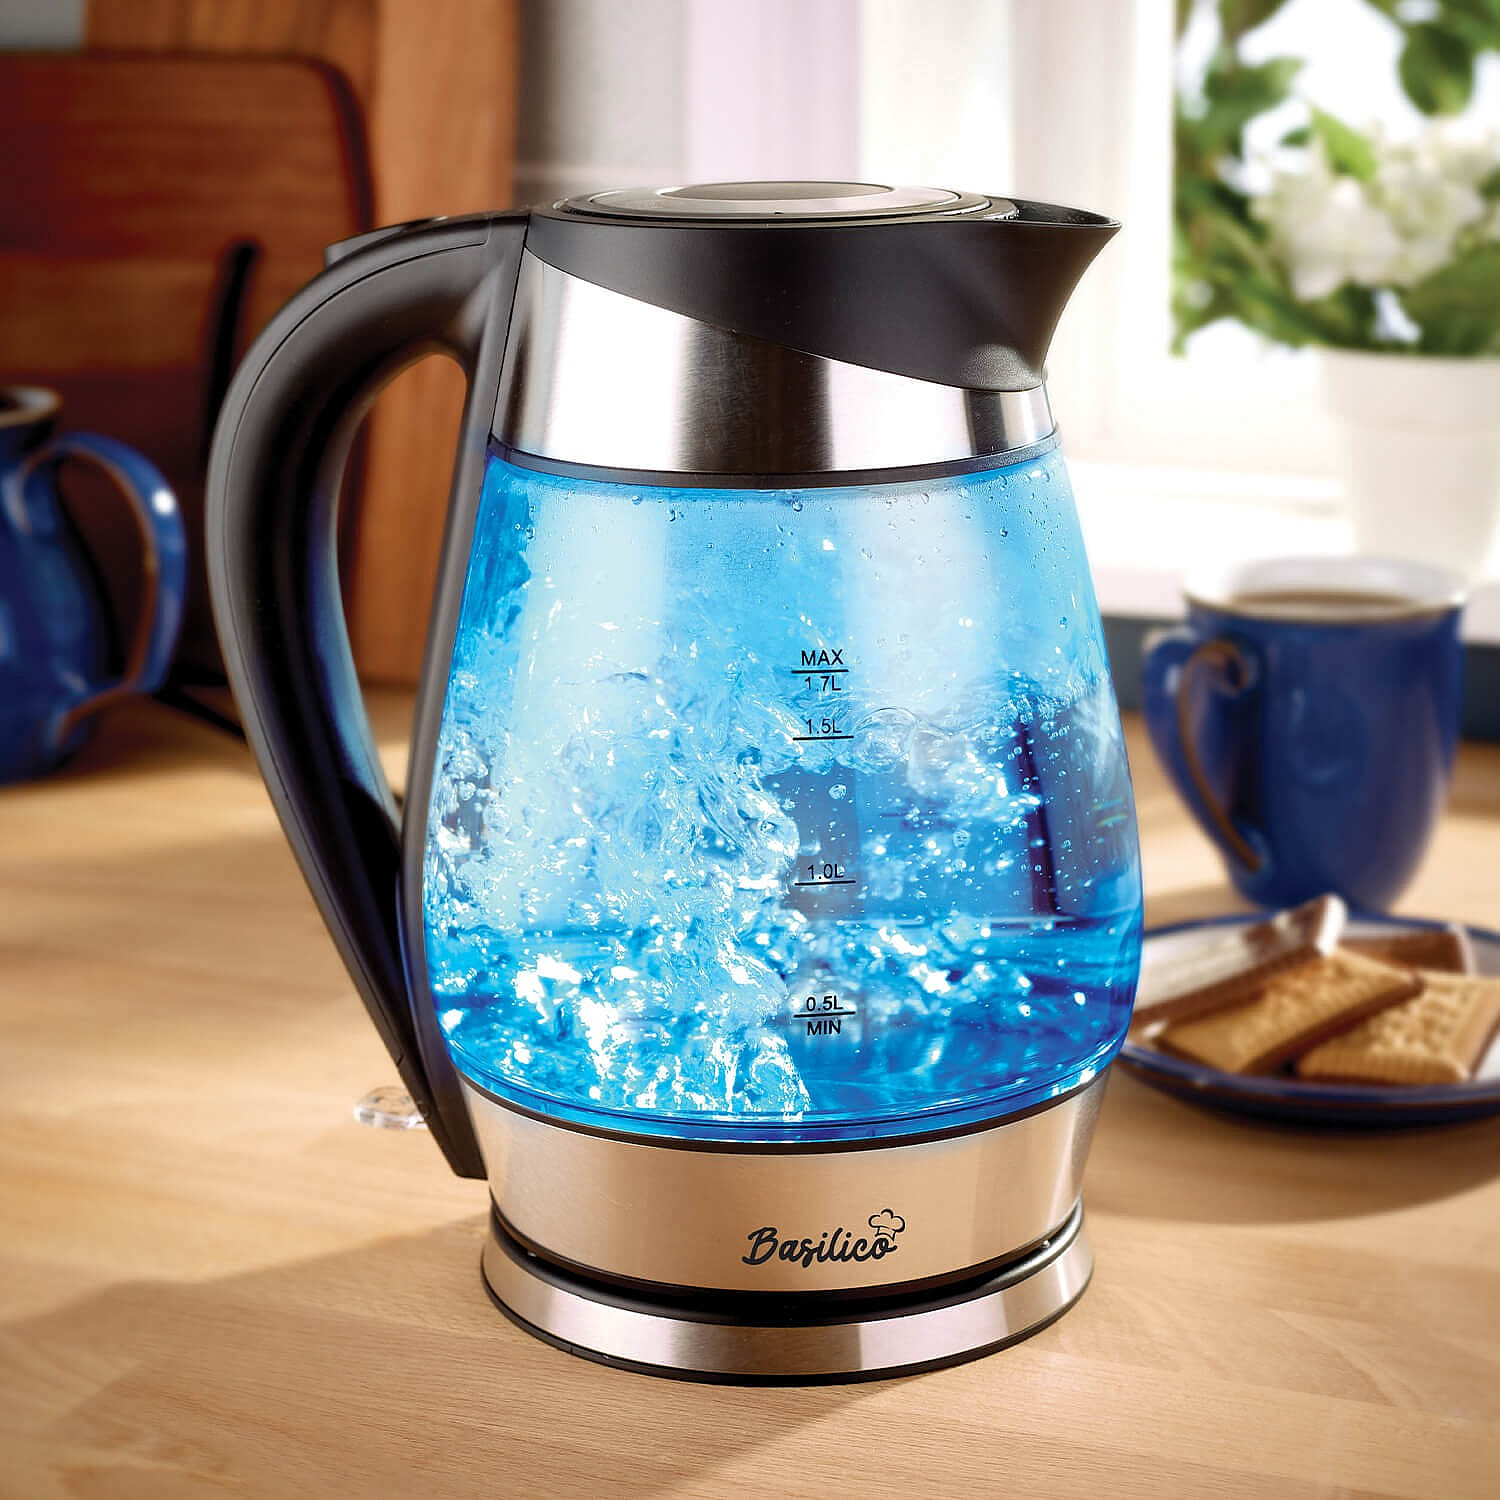 Glass LED Kettle 1.7 litre by Coopers of Stortford